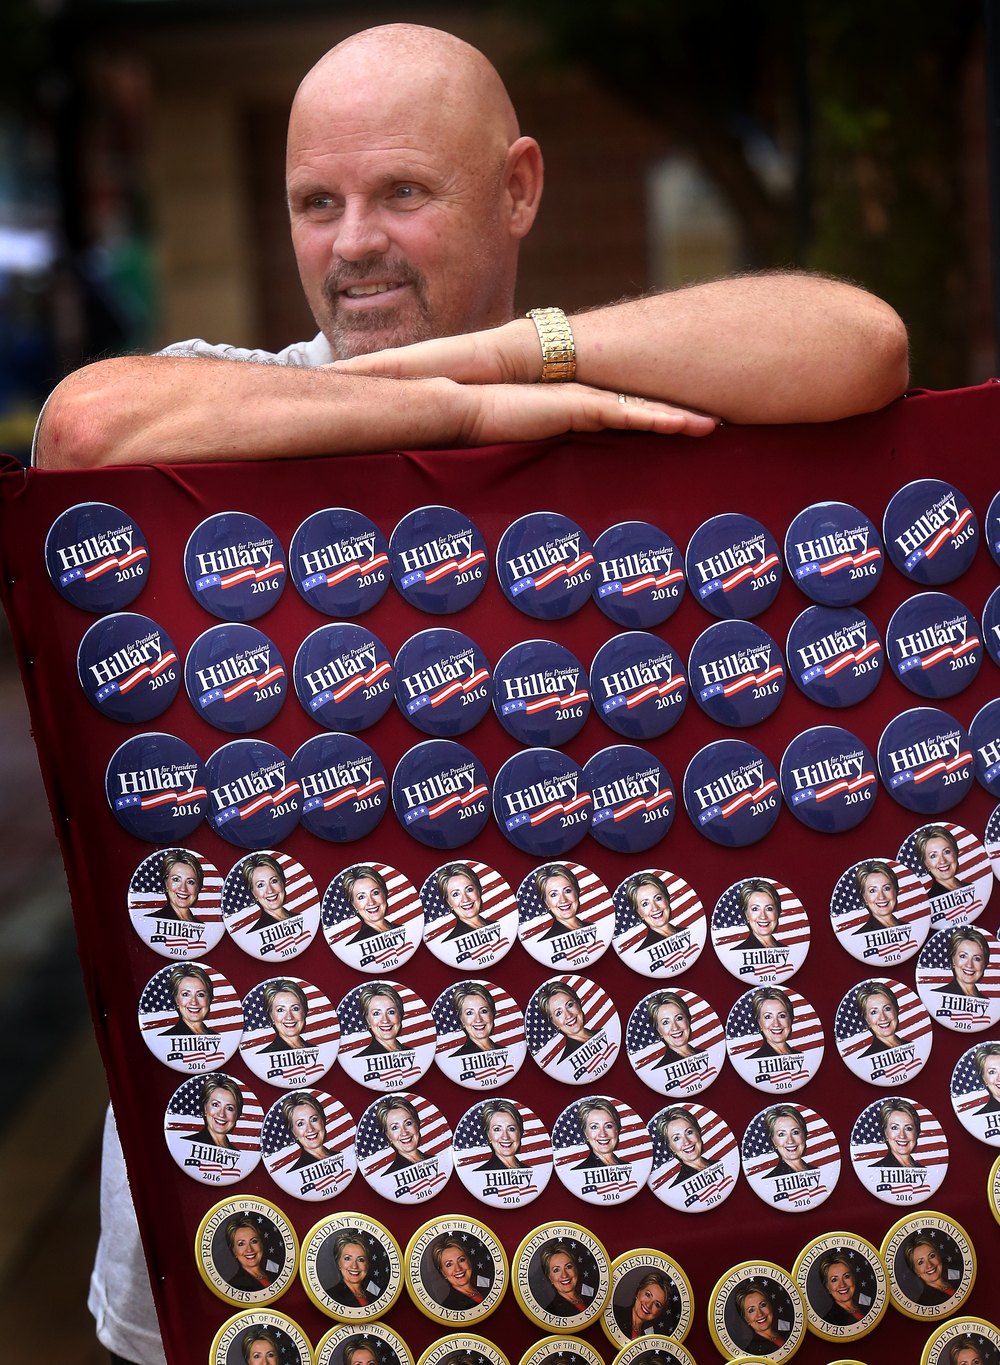 Hillary Clinton campaign button vendor Dave Mullen waits for a customer outside the Old State Capitol Wednesday. Buttons were priced at $3.00 each or two for $5.00. David Spencer/The State Journal-Register